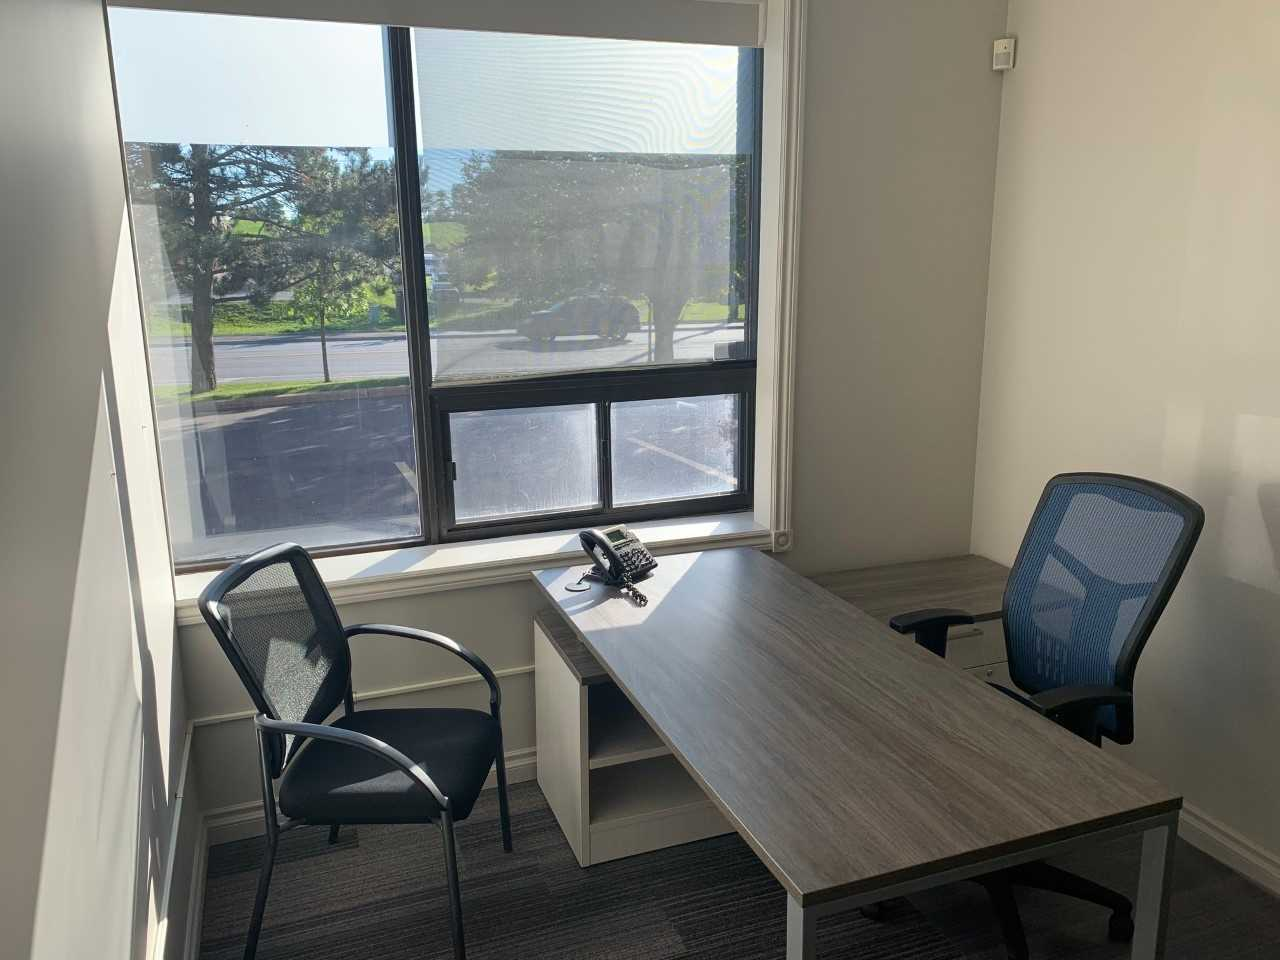 Professionally Renovated Turnkey Executive Offices For Rent In The Heart Of Newmarket's Commercial District. Abundant Parking On Site. Easy Access To Hwy 404 & Minutes To Downtown Newmarket. Bright, Fully Furnished Ground Floor Units Ready To Move-In.